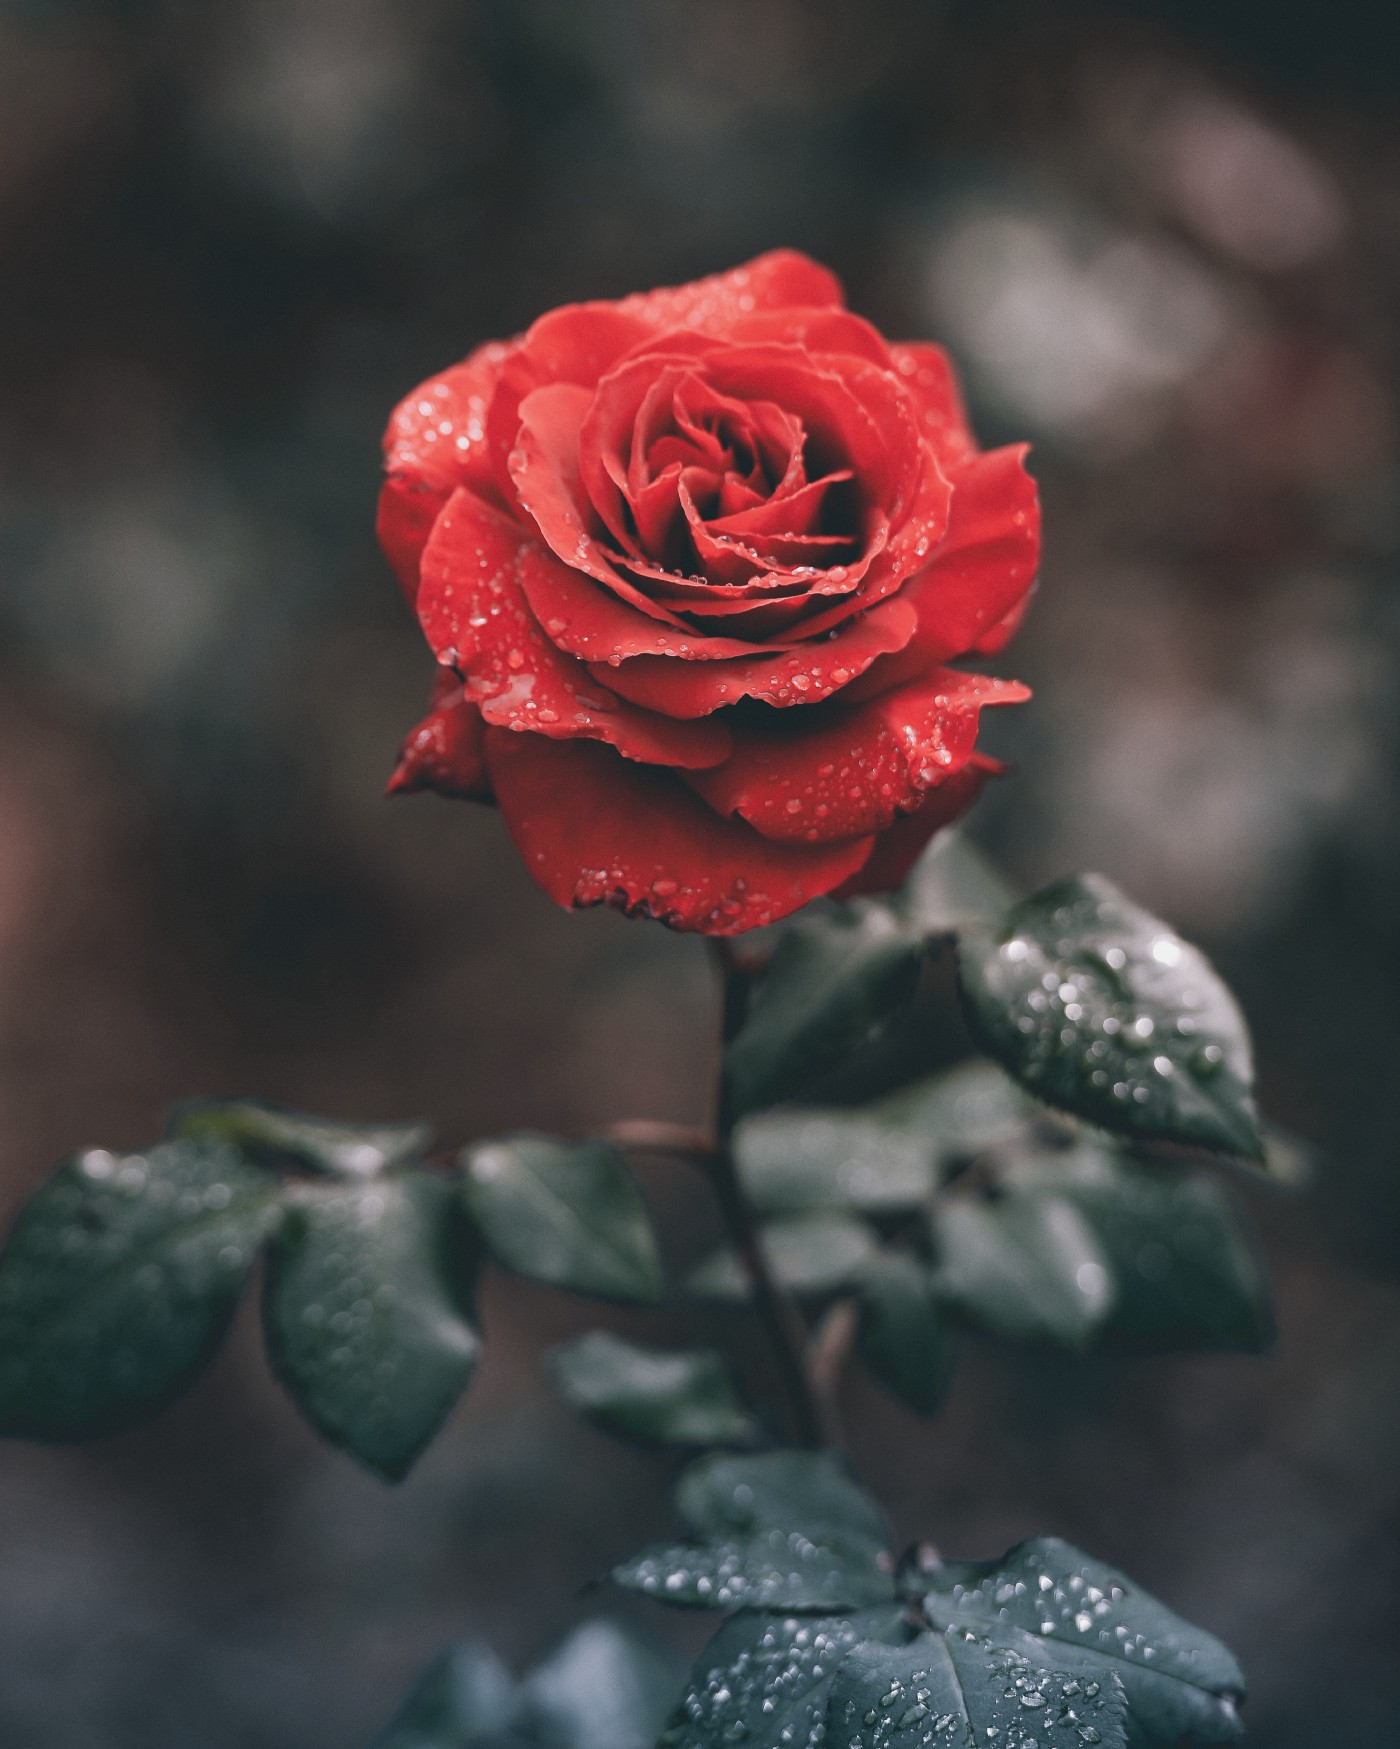 A red rose covered in droplets of water